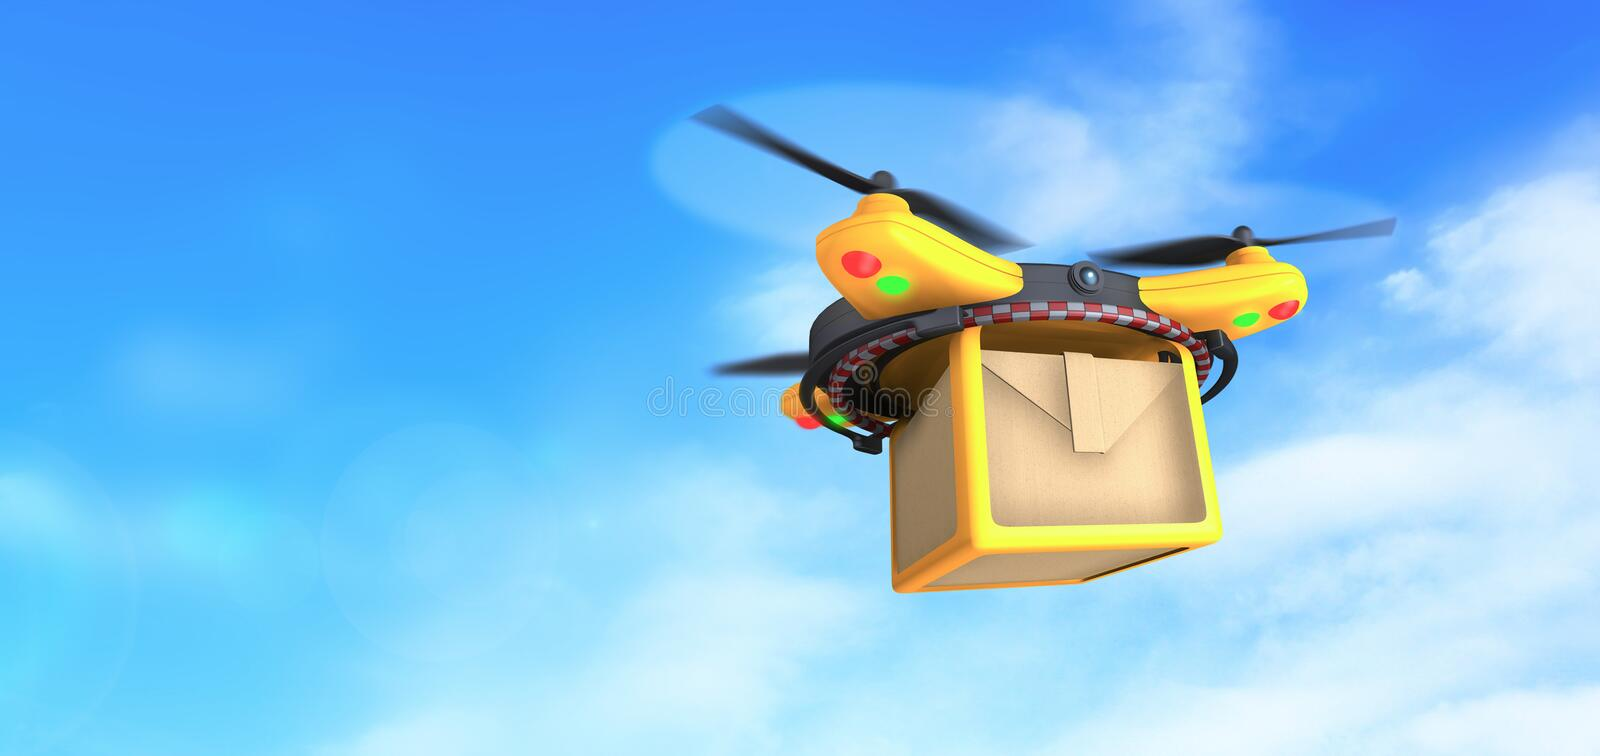 Drone deliver parcel package carton box on blue sky background. Concept illustration, hd images. Illustration of conceptual yellow quadcopter delivery drone in vector illustration